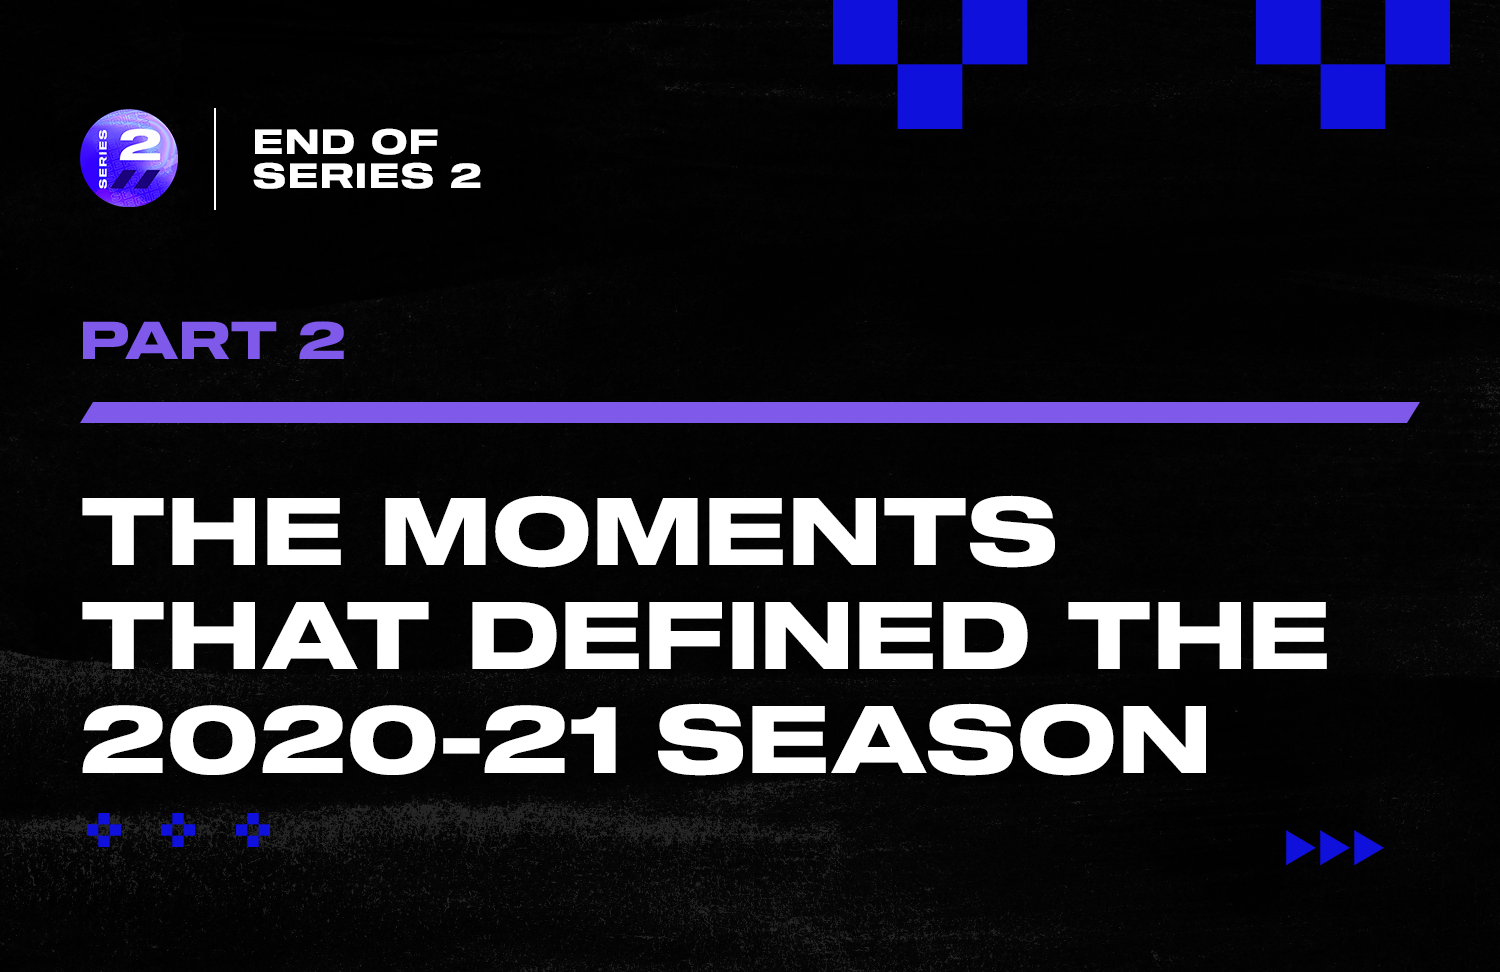 Head back through the home stretch of the regular season through the NBA Finals, as we wind back the season's signature Moments.